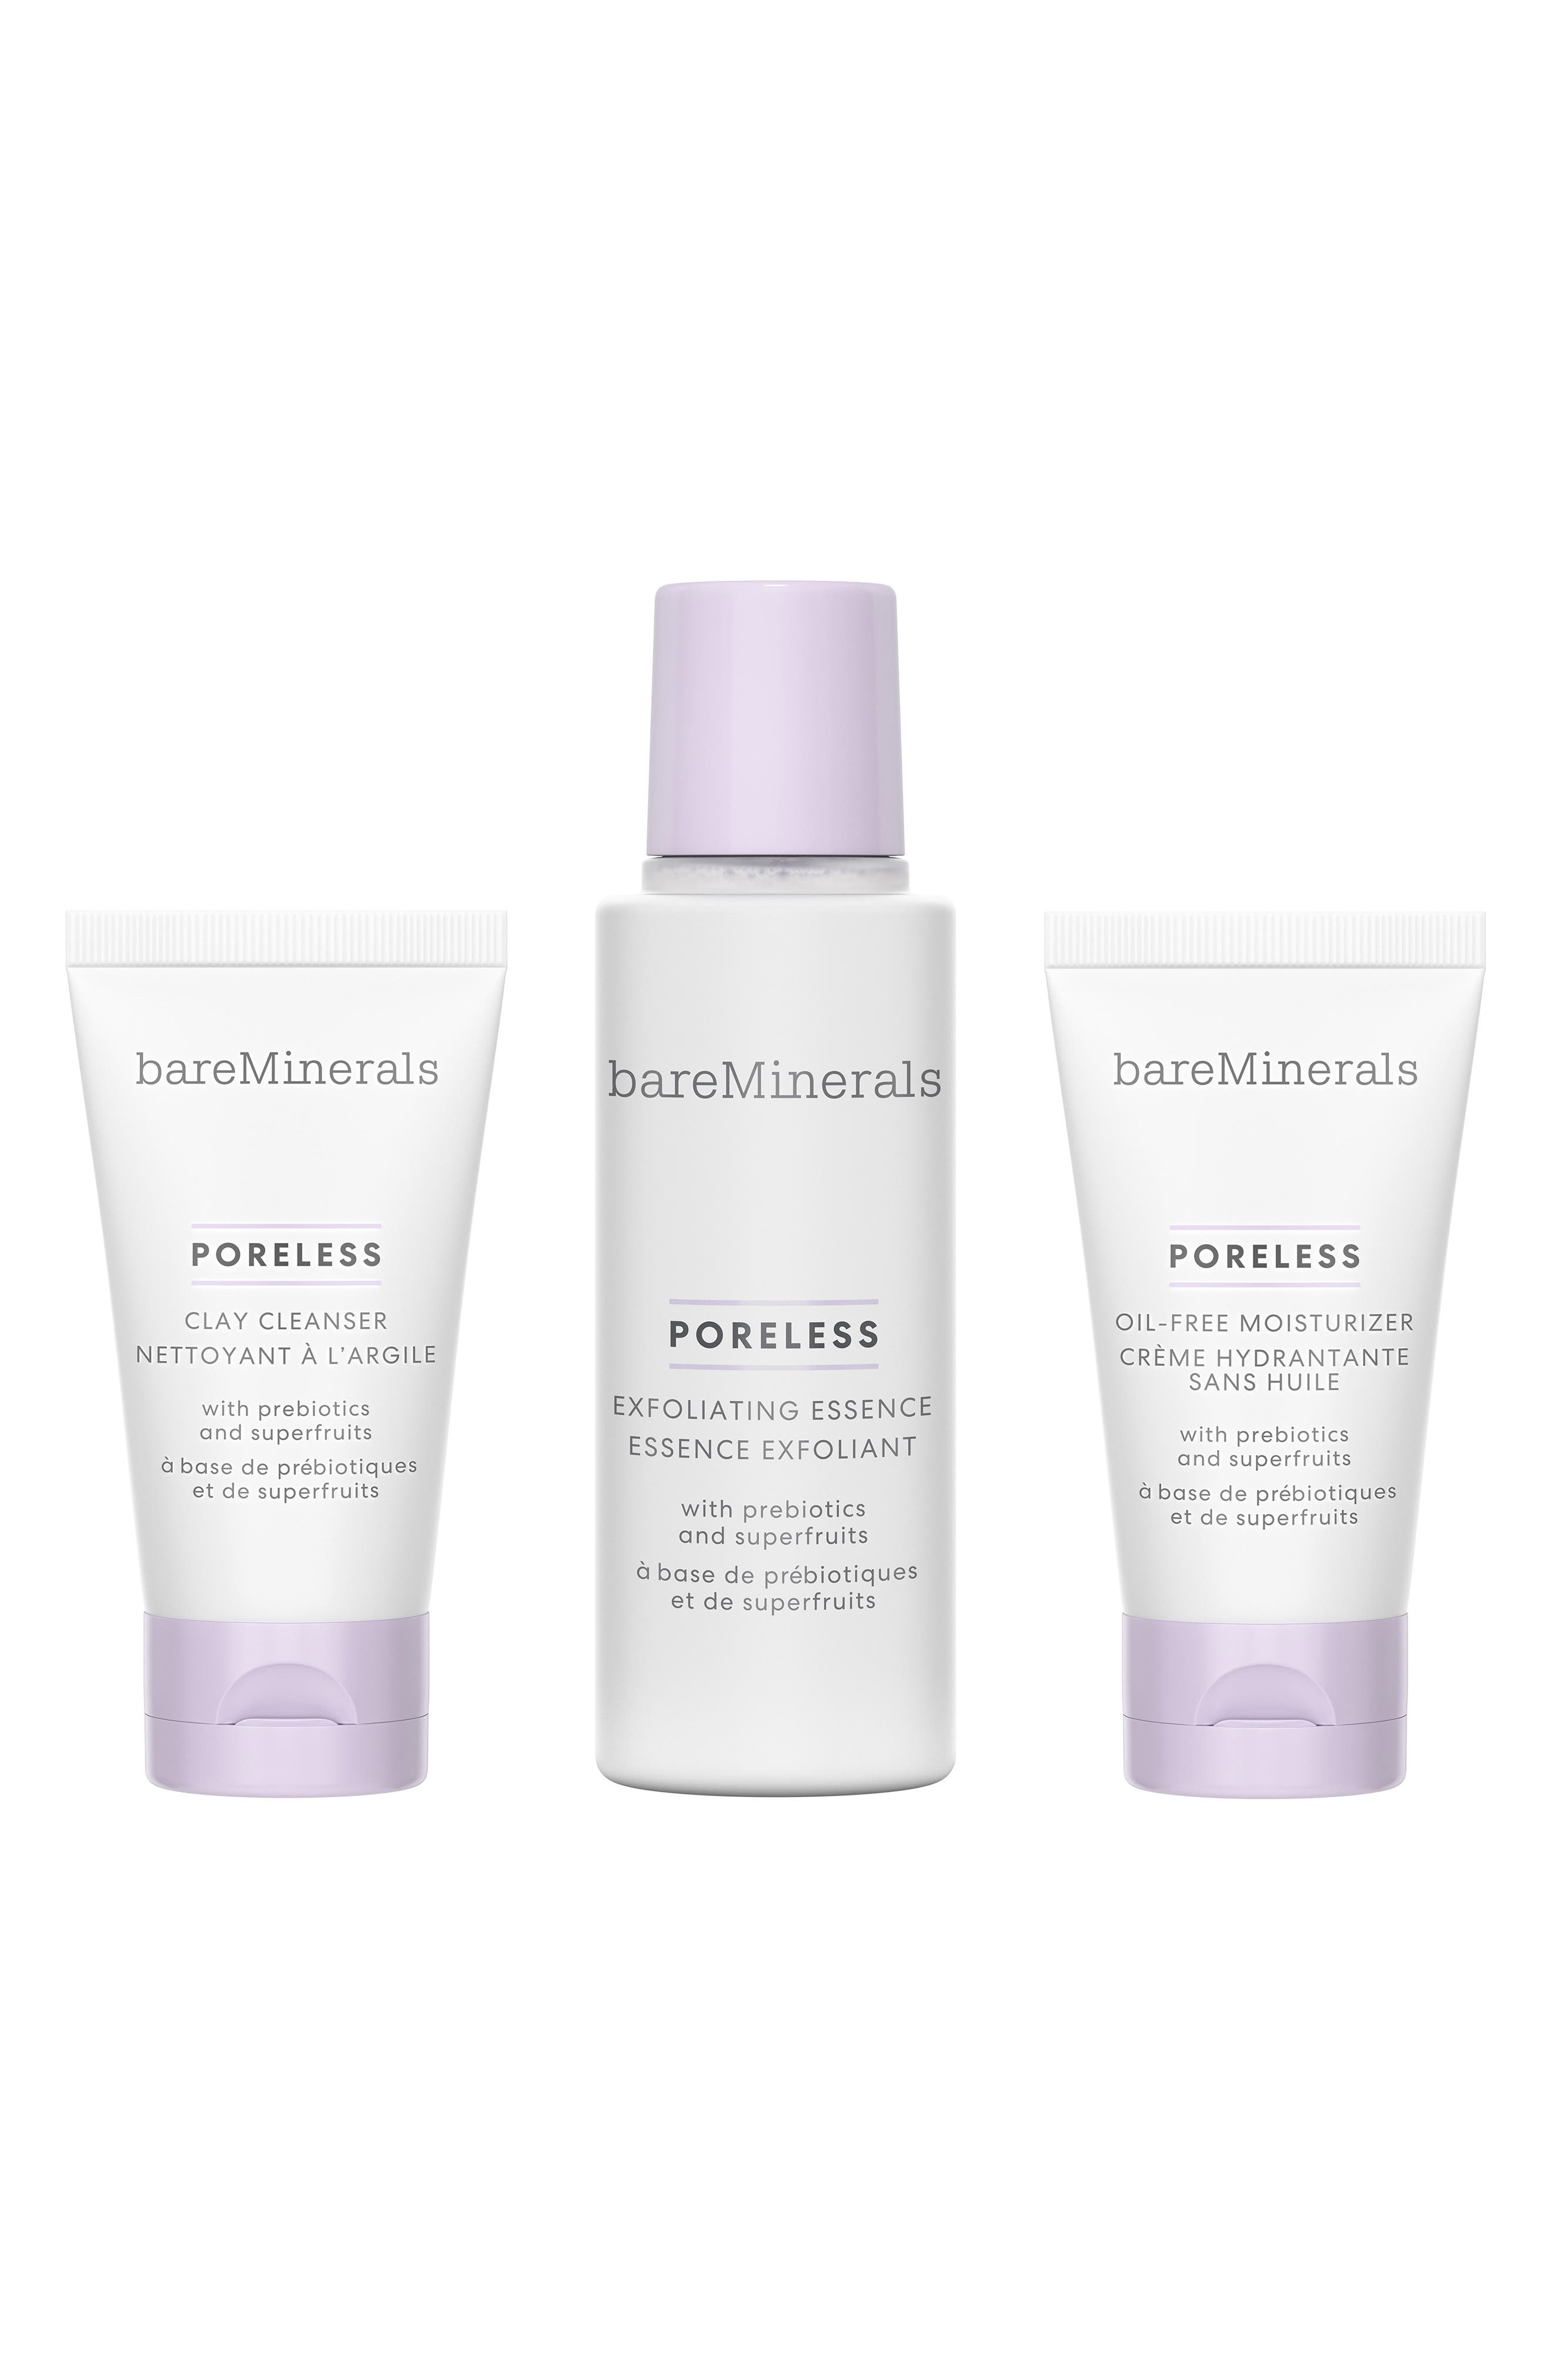 What it is: Minimize the look of pores with this limited-edition, travel-size skincare kit thats perfect for all skin types. What it does: This 3-step PORELESS regimen reveals dramatically smaller-looking pores in just 1 week. The vegan formulas are rich in exfoliating superfruit acids and nutrient-packed prebiotics to minimize the look of pores and give skin a fresh, healthy-looking holiday glow. Your skin is left looking refined and smooth. Set